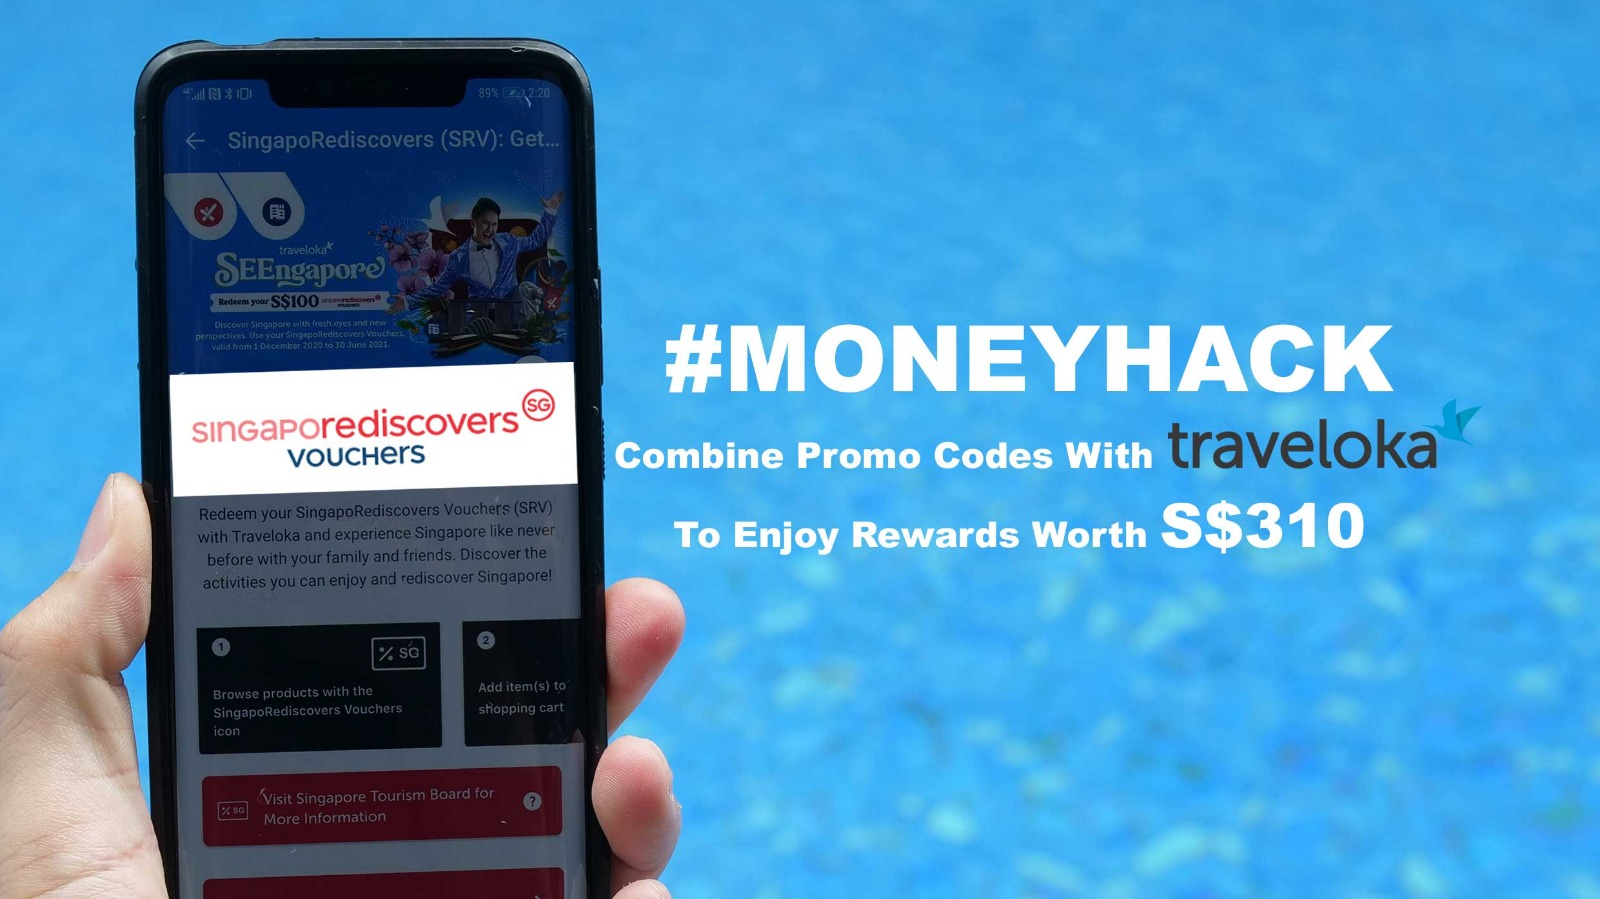 [$10 Coupon Inside!] Hack your SingapoRediscovers Vouchers By Combining Coupons And Get Rewards Up To $310 On Traveloka - Alvinology